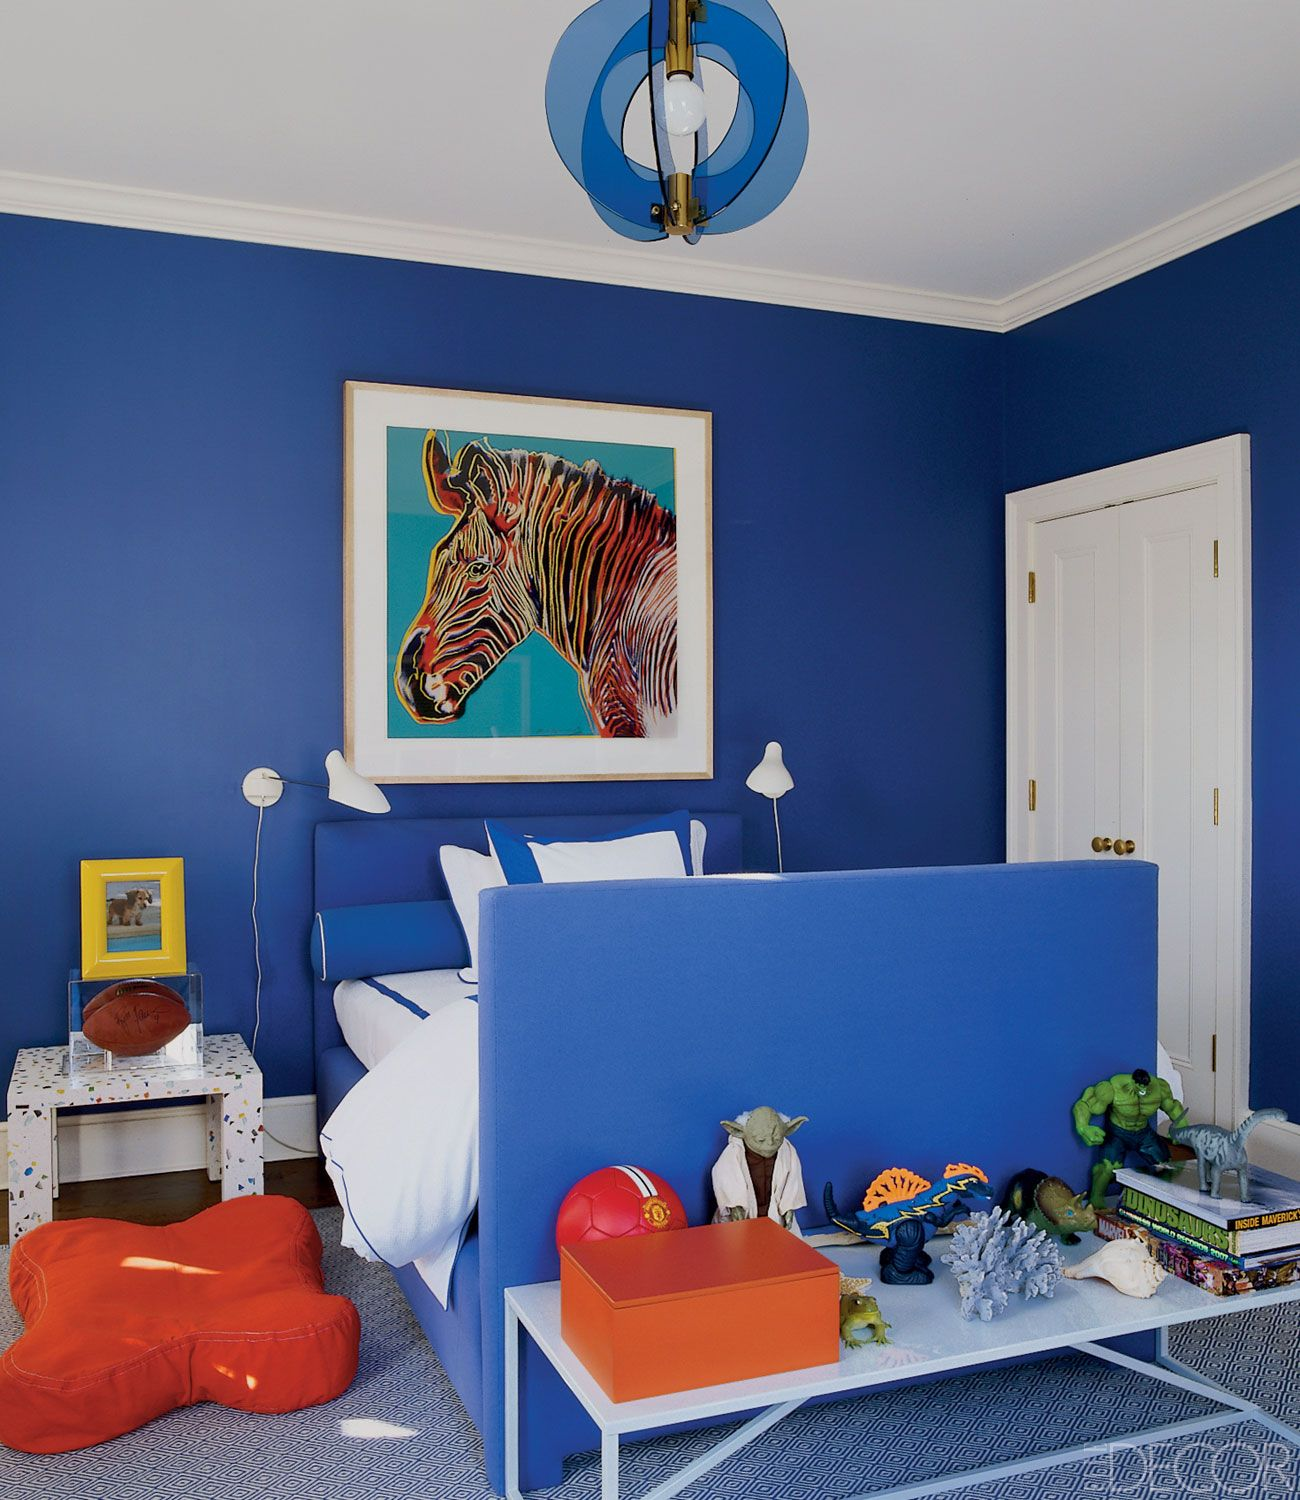 Child Bedroom Interior Design 15 cool boys bedroom ideas  decorating a little boy room